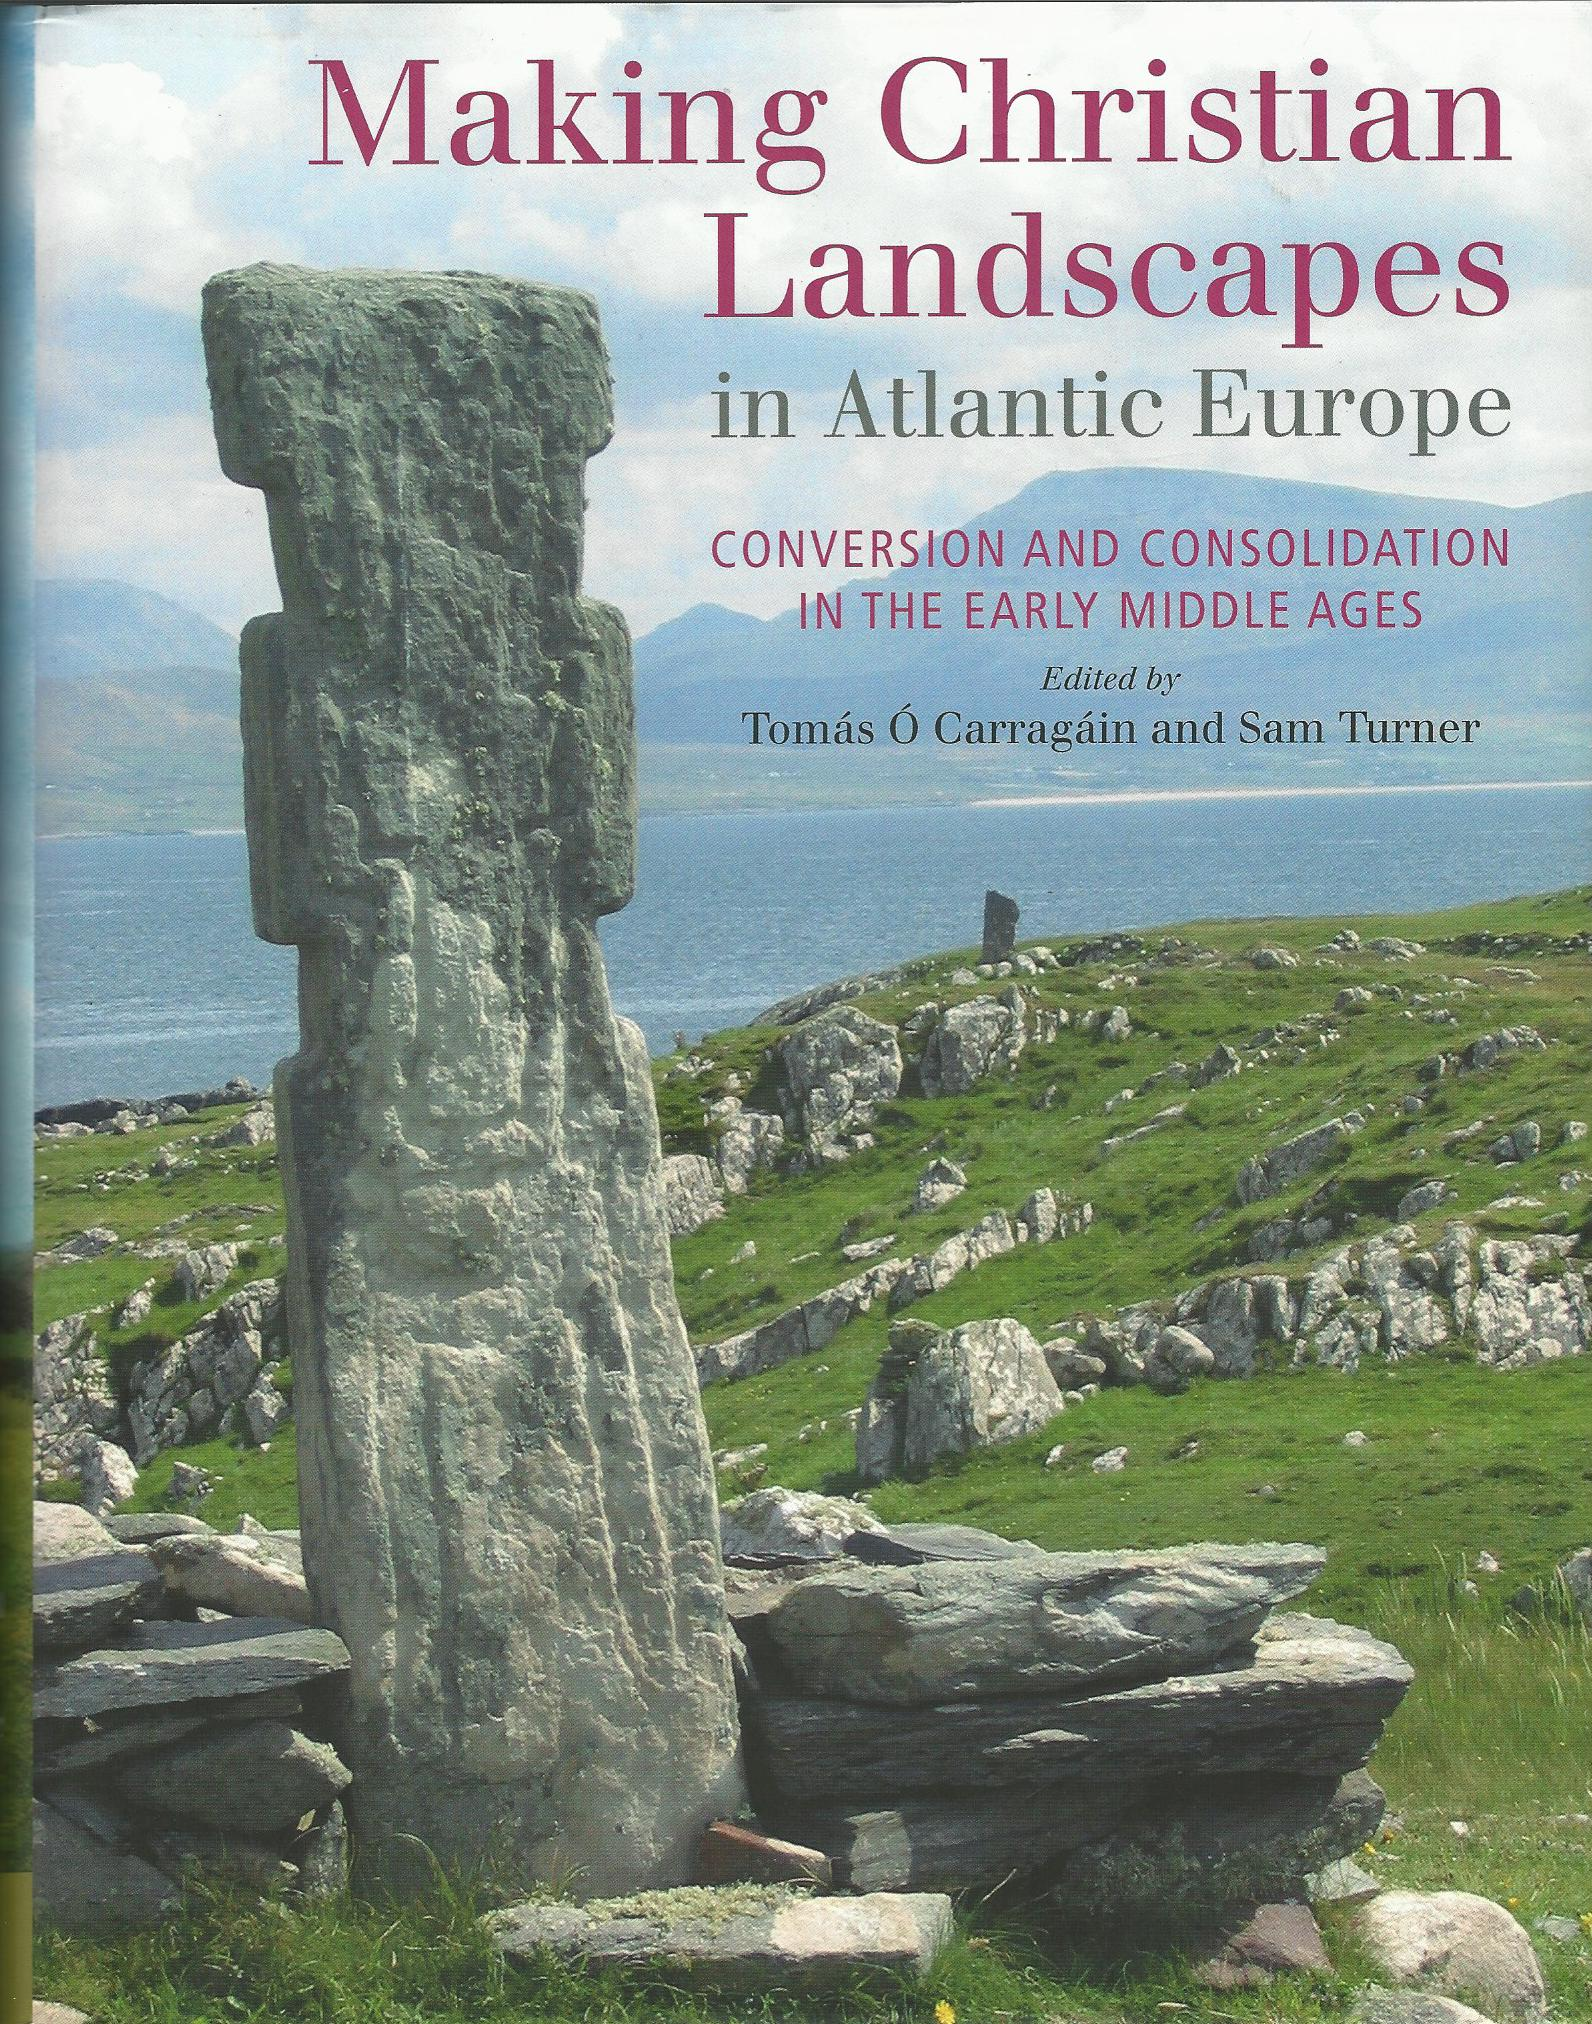 Image for Making Christian Landscapes in Atlantic Europe: Conversion and Consolidation in the Early Middle Ages